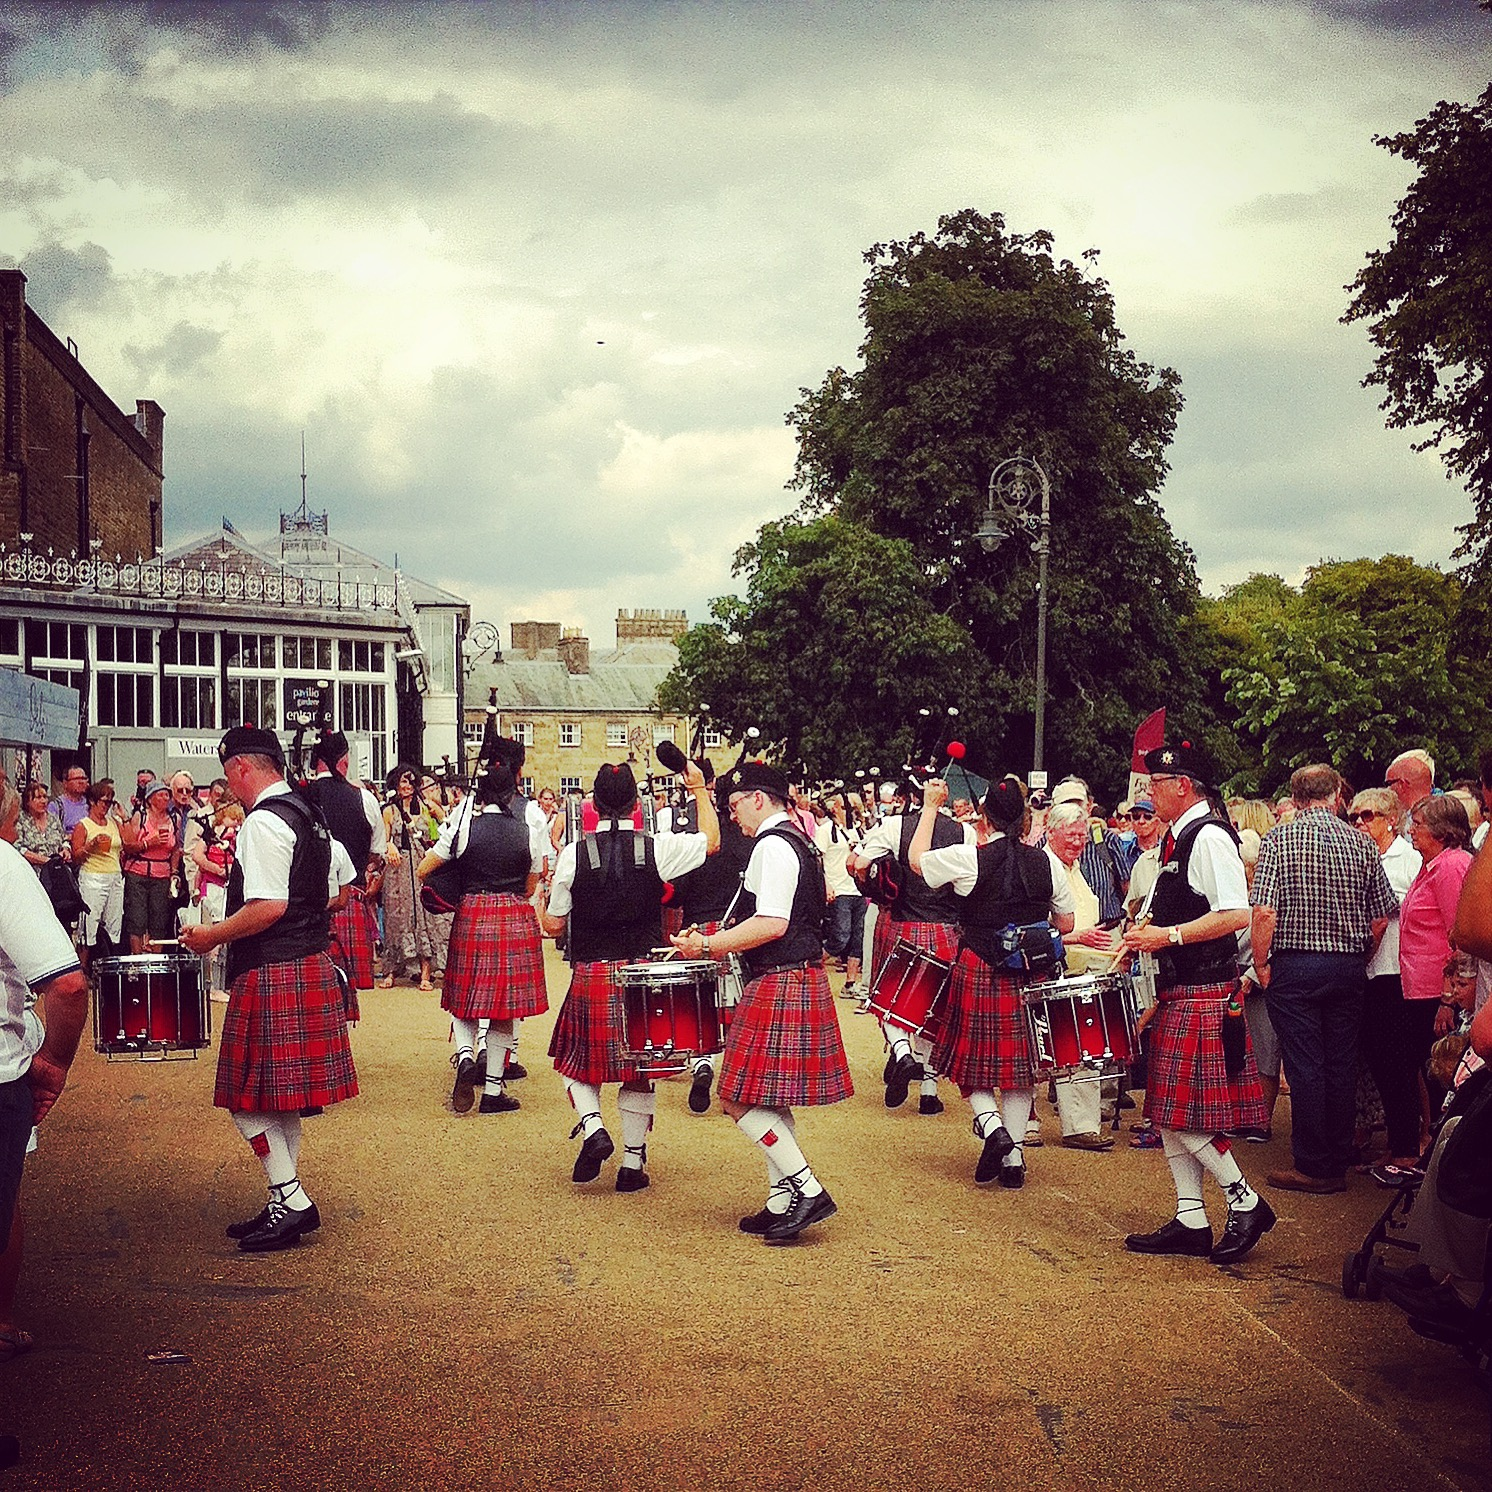 Kilted Performers